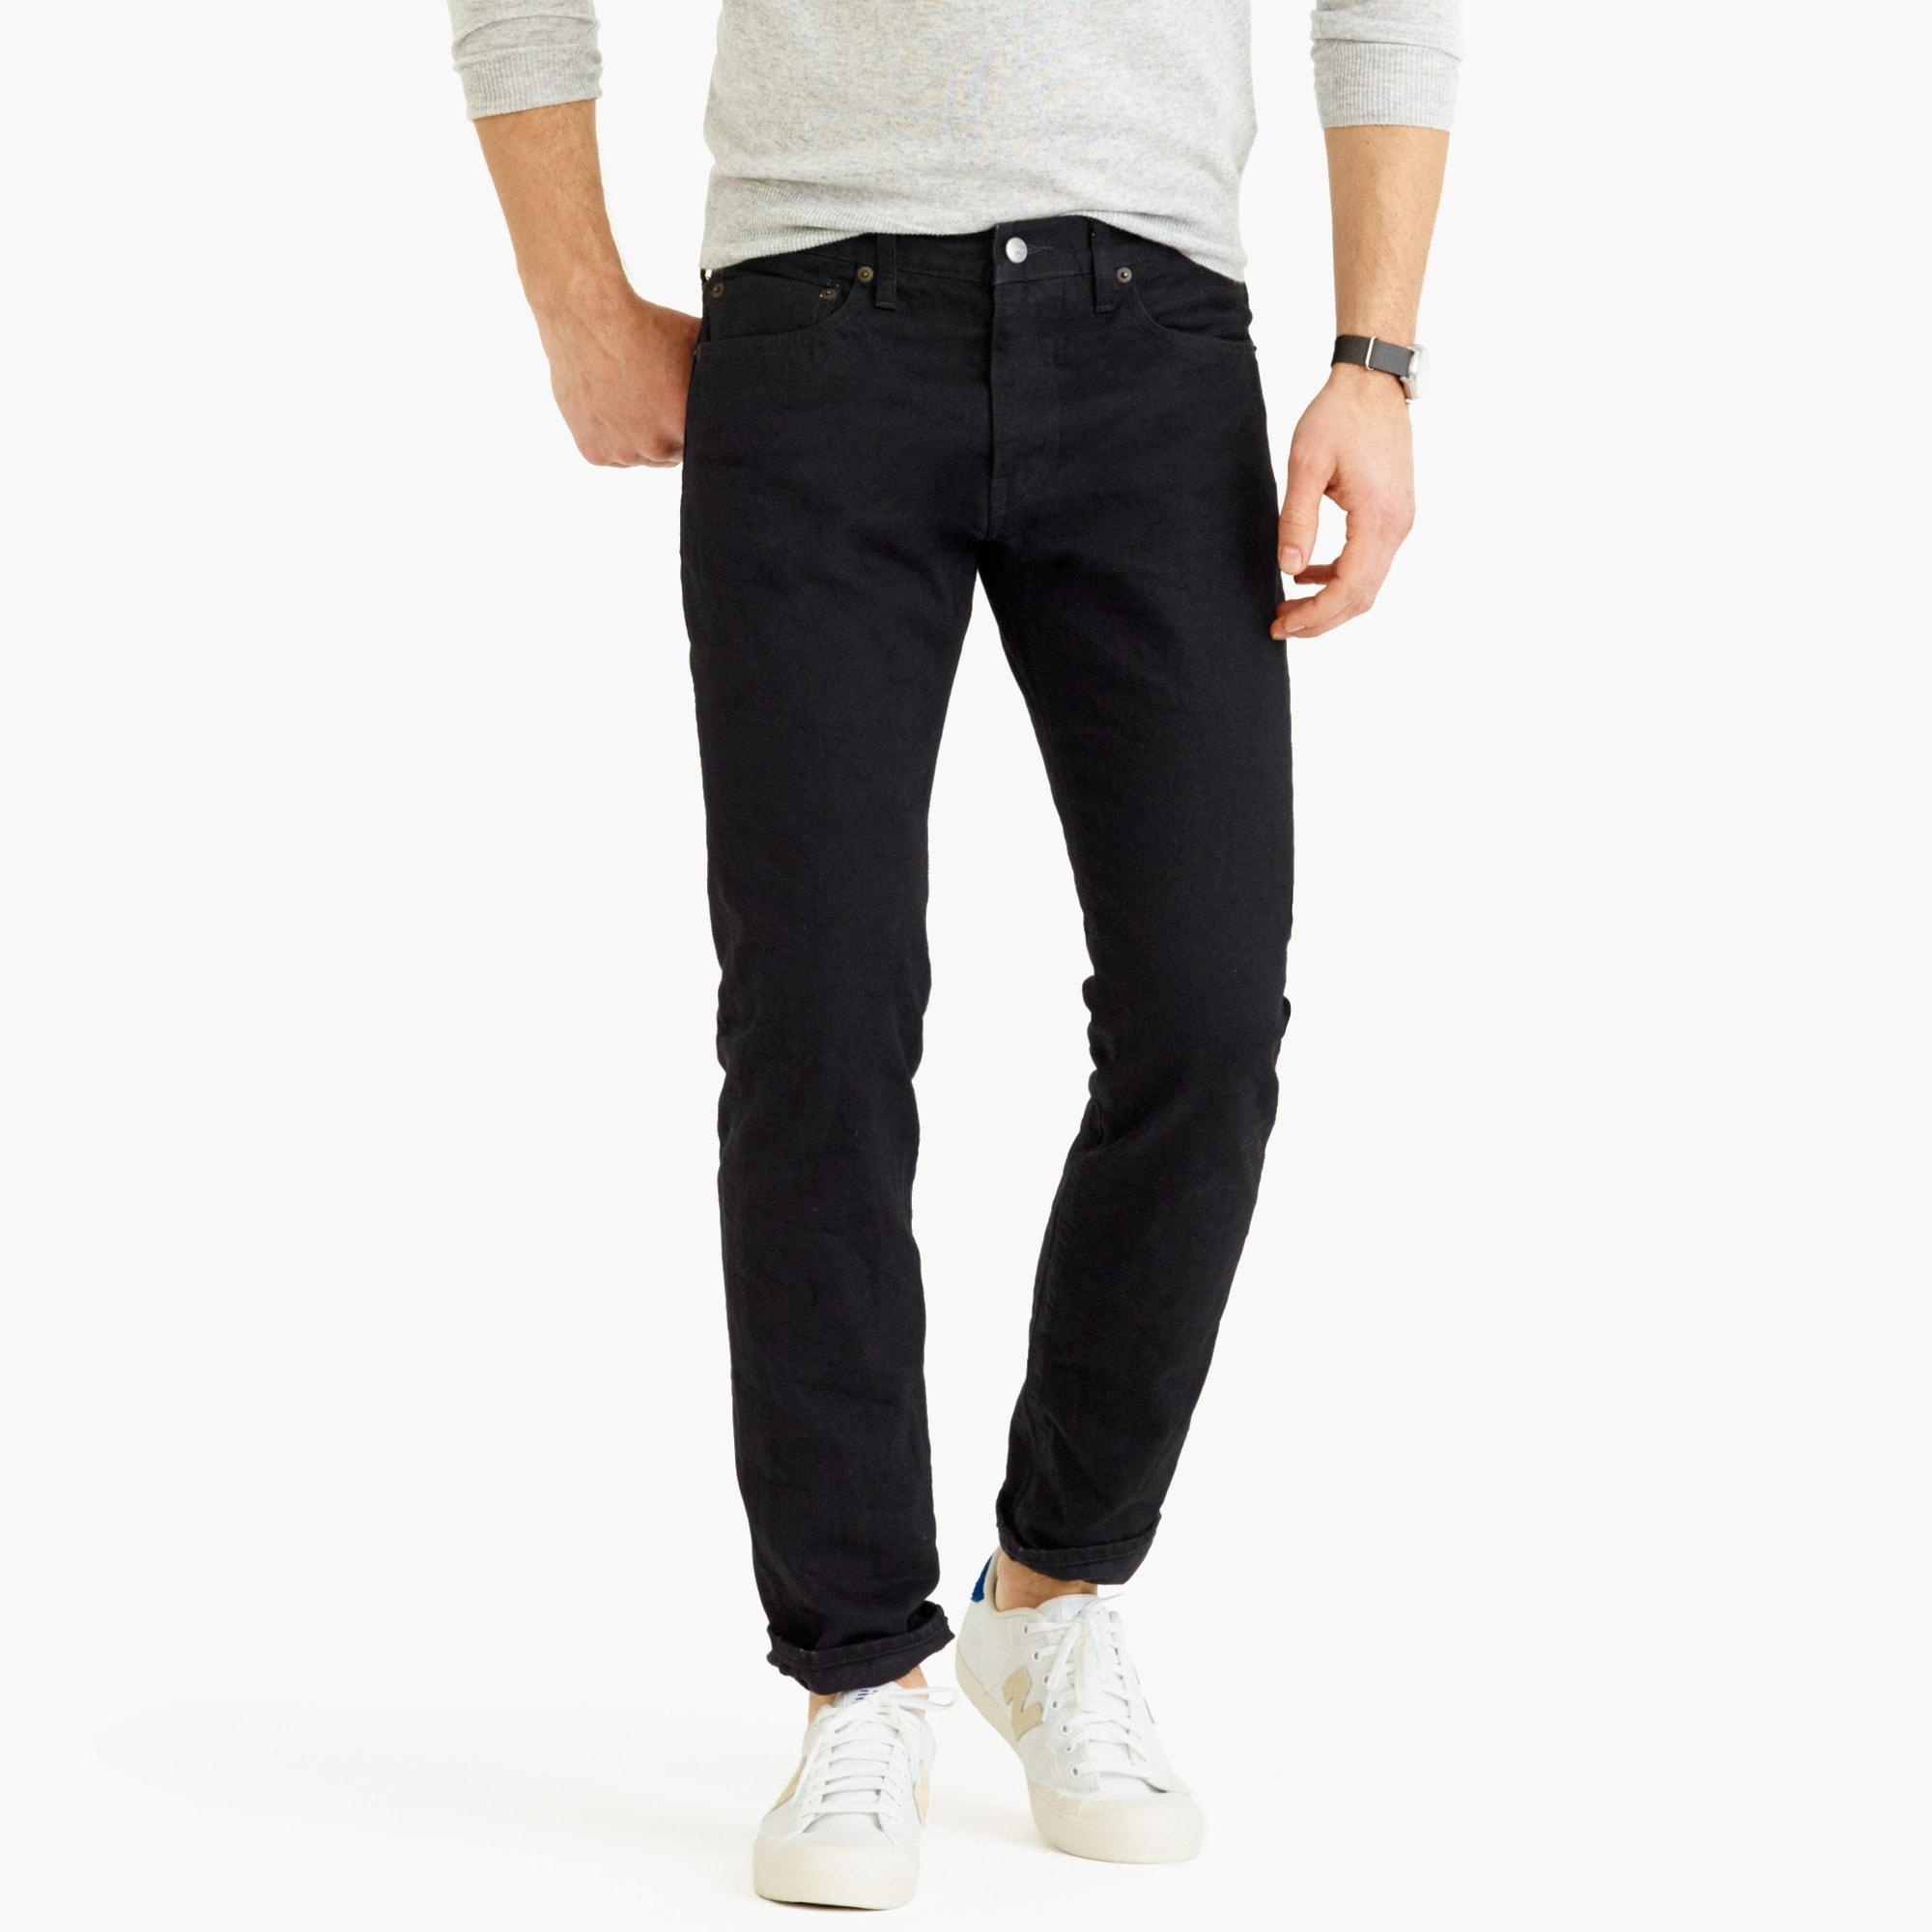 Image 1 for 484 Slim-fit jean in Barnet black wash